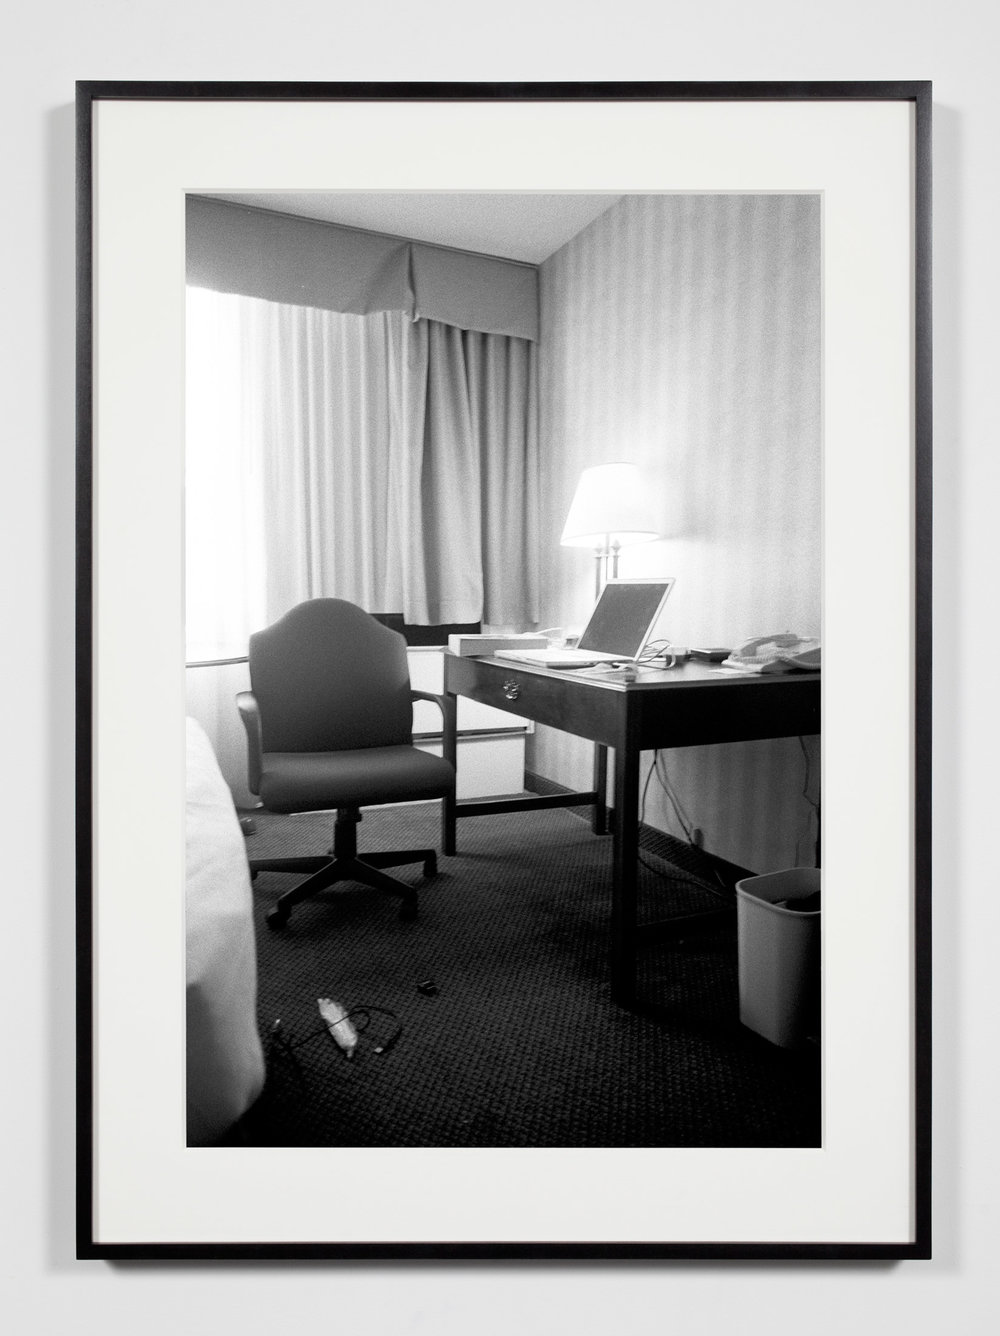 Hotel Room, Washington, District of Columbia, April 24, 2009    2011   Epson Ultrachrome K3 archival ink jet print on Hahnemühle Photo Rag paper  36 3/8 x 26 3/8 inches   Industrial Portraits, 2008–